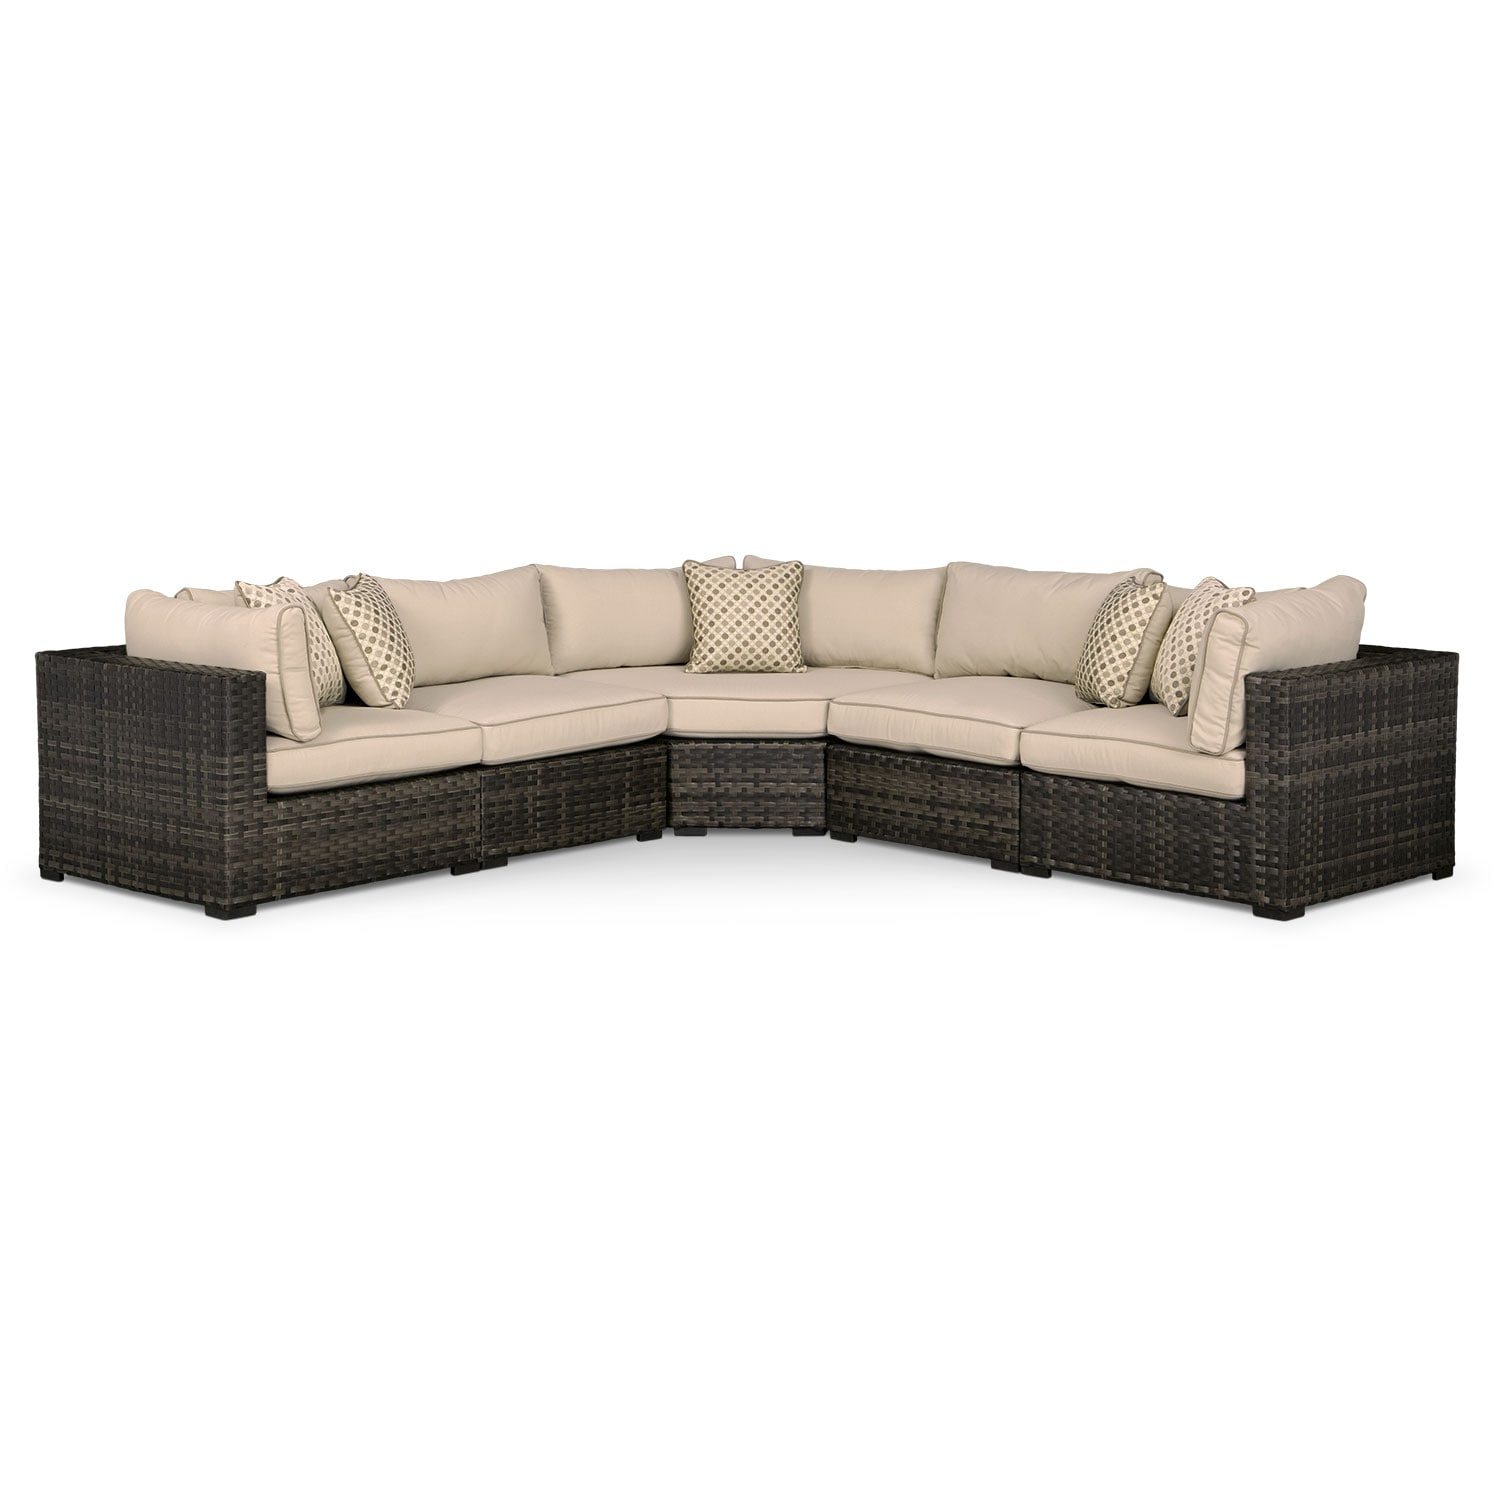 Outdoor Furniture - Regatta 5 Pc. Outdoor Sectional w/ Wedge